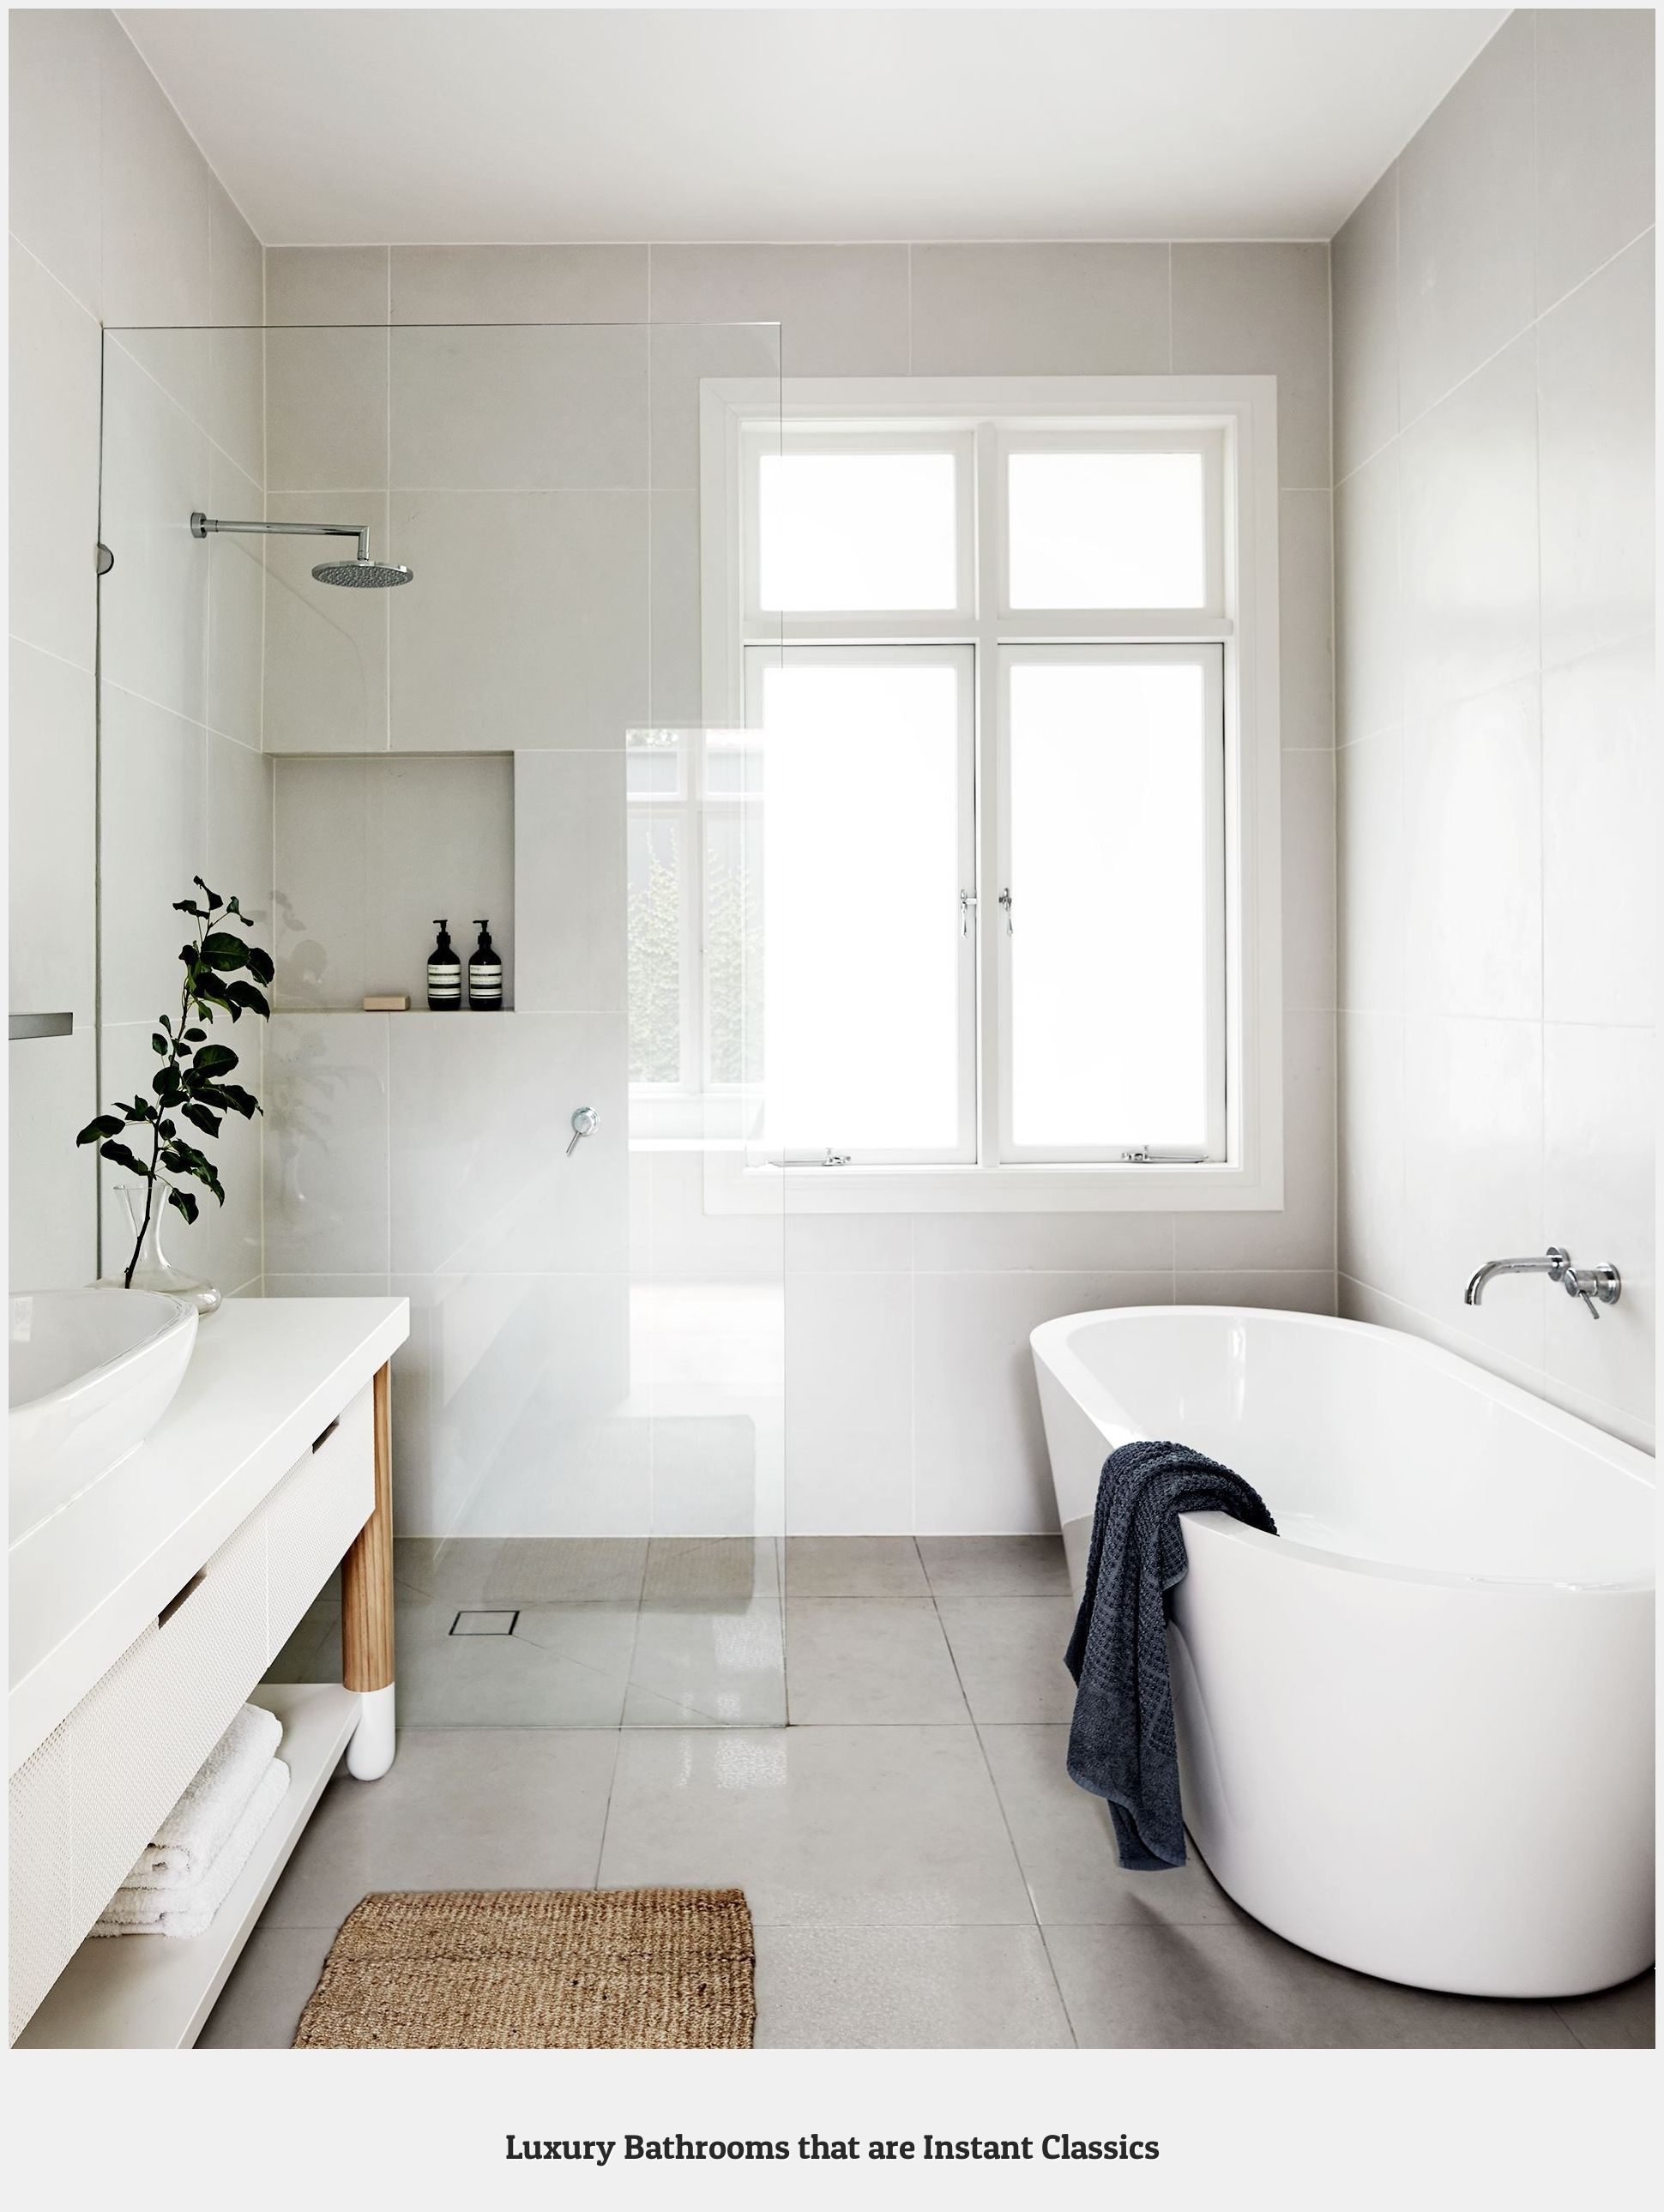 Bathroom 86349 Shower And Free Standing Bath Preferred If Space Permits Along With Double Vanity In 2020 Best Bathroom Designs Bathroom Layout Modern Bathroom Design